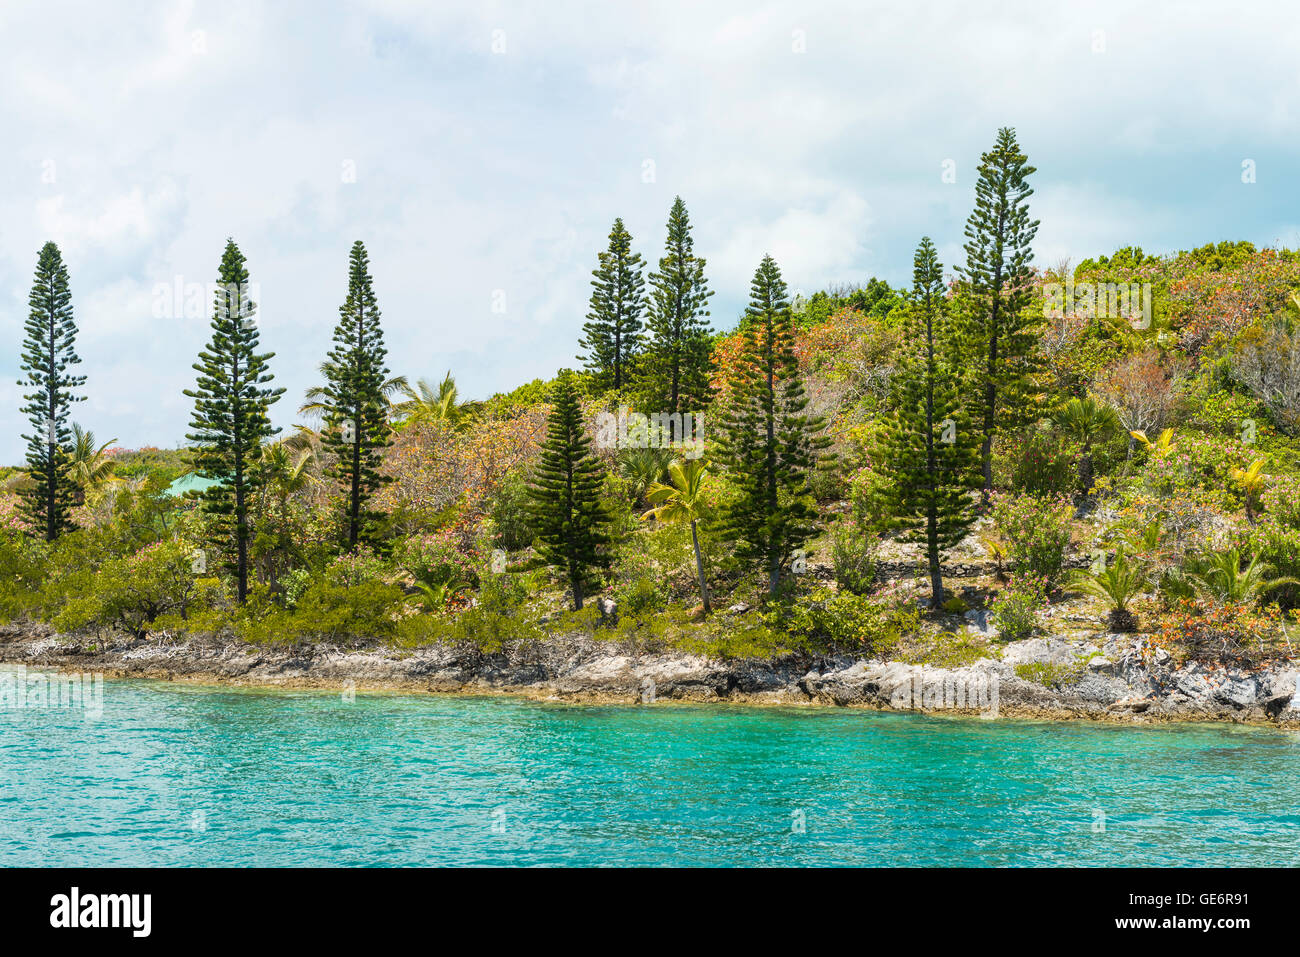 Coastal landscape and vegetation on a small island near Hamilton, Bermuda - Stock Image